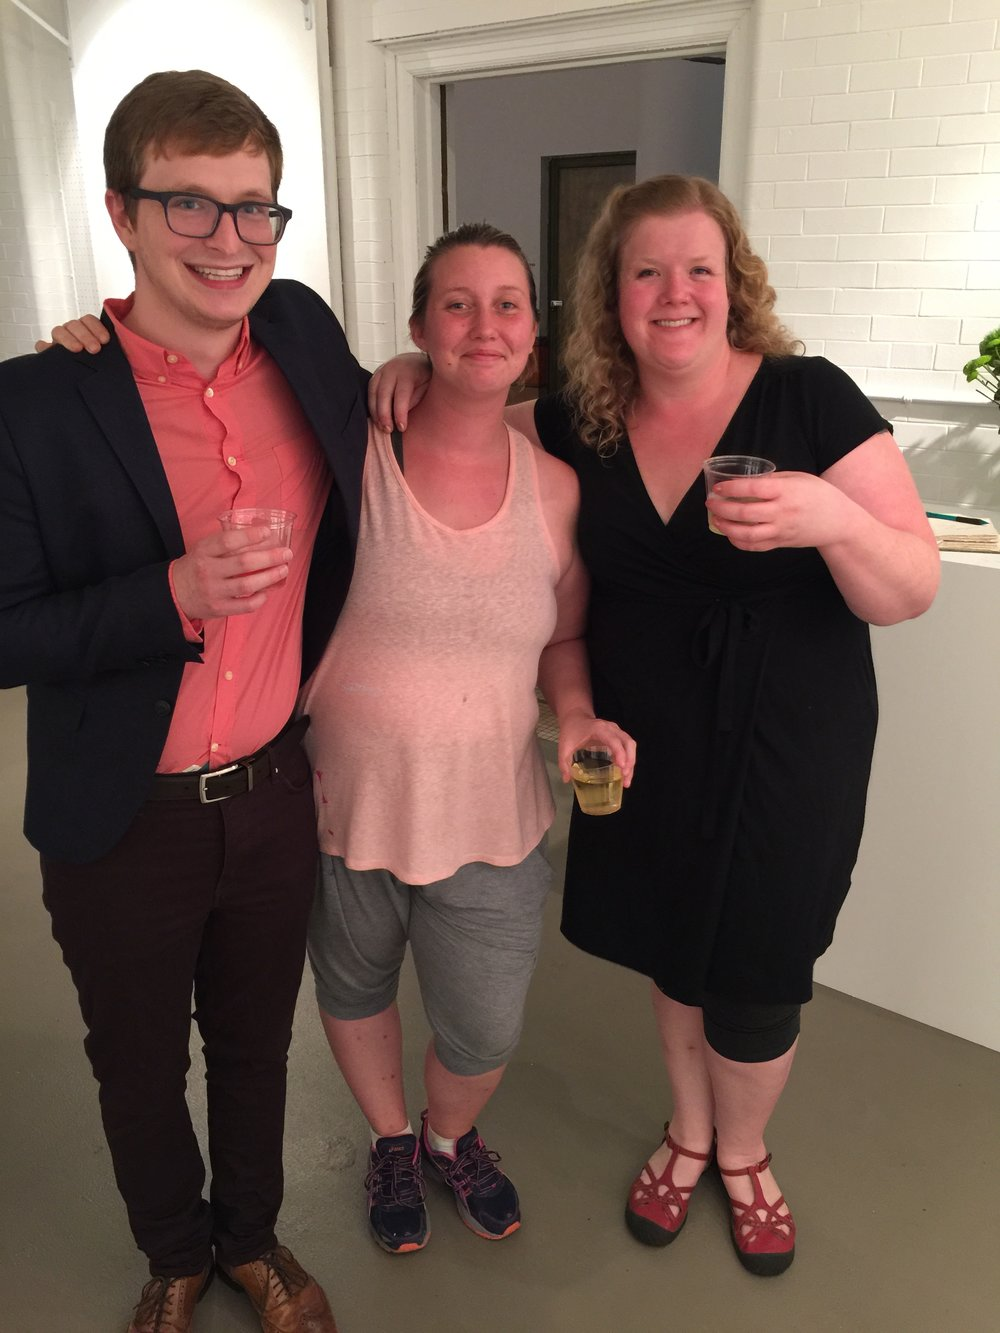 Exhibition shot, Micah Zavacky, MFA candidate in painting Megan Coonelly, and Laura Newman.